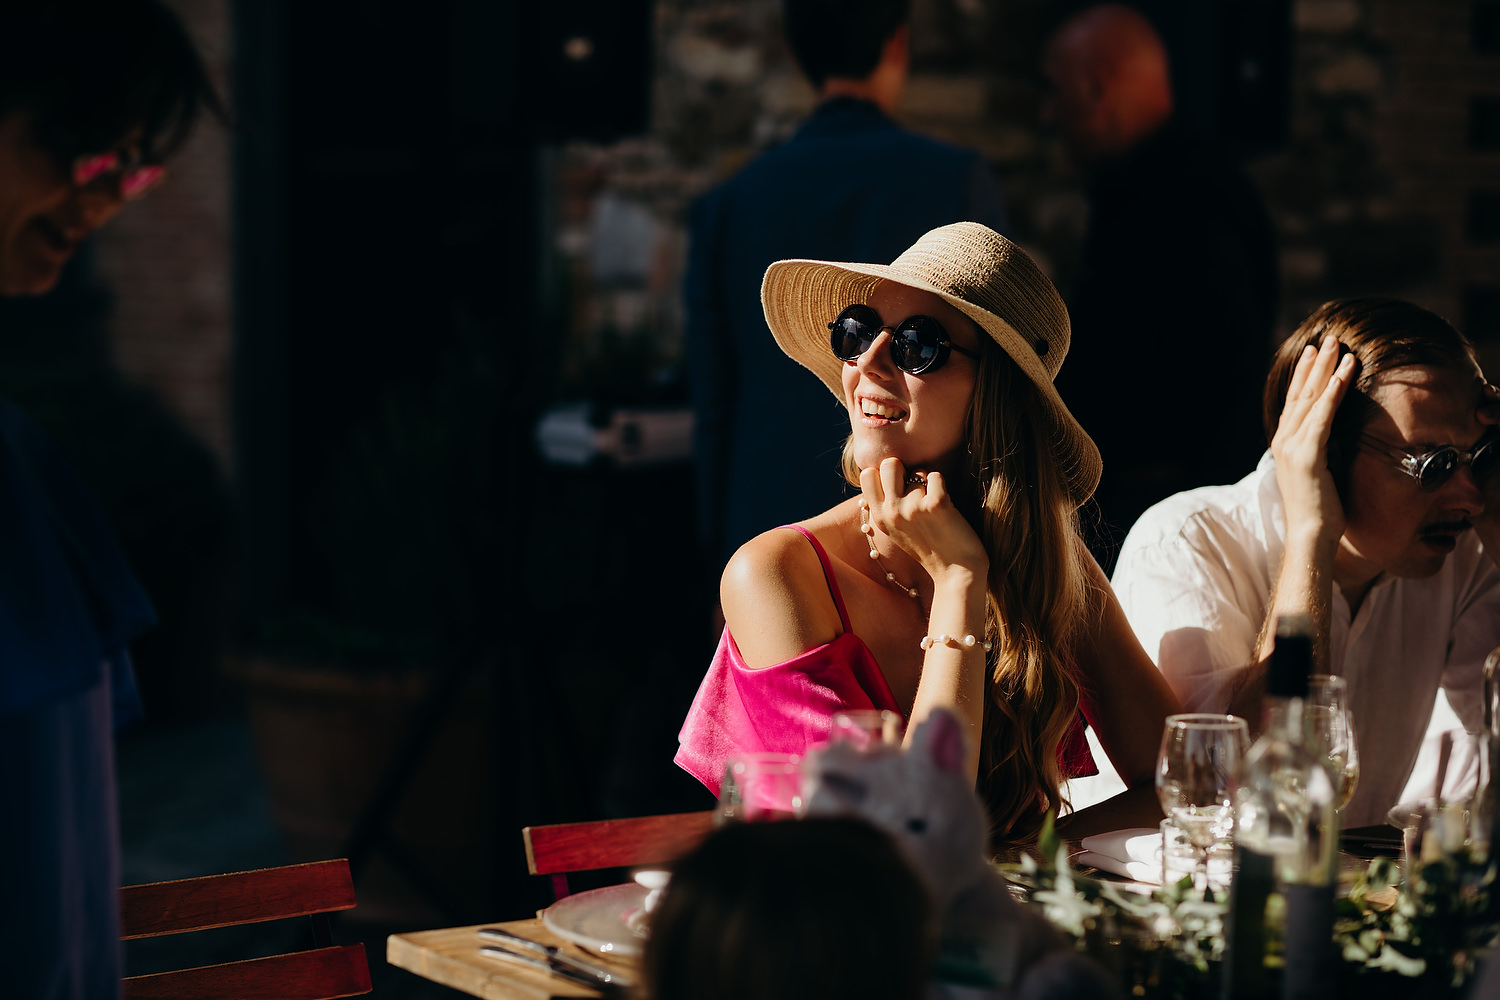 woman with shades and hat at Tuscany wedding